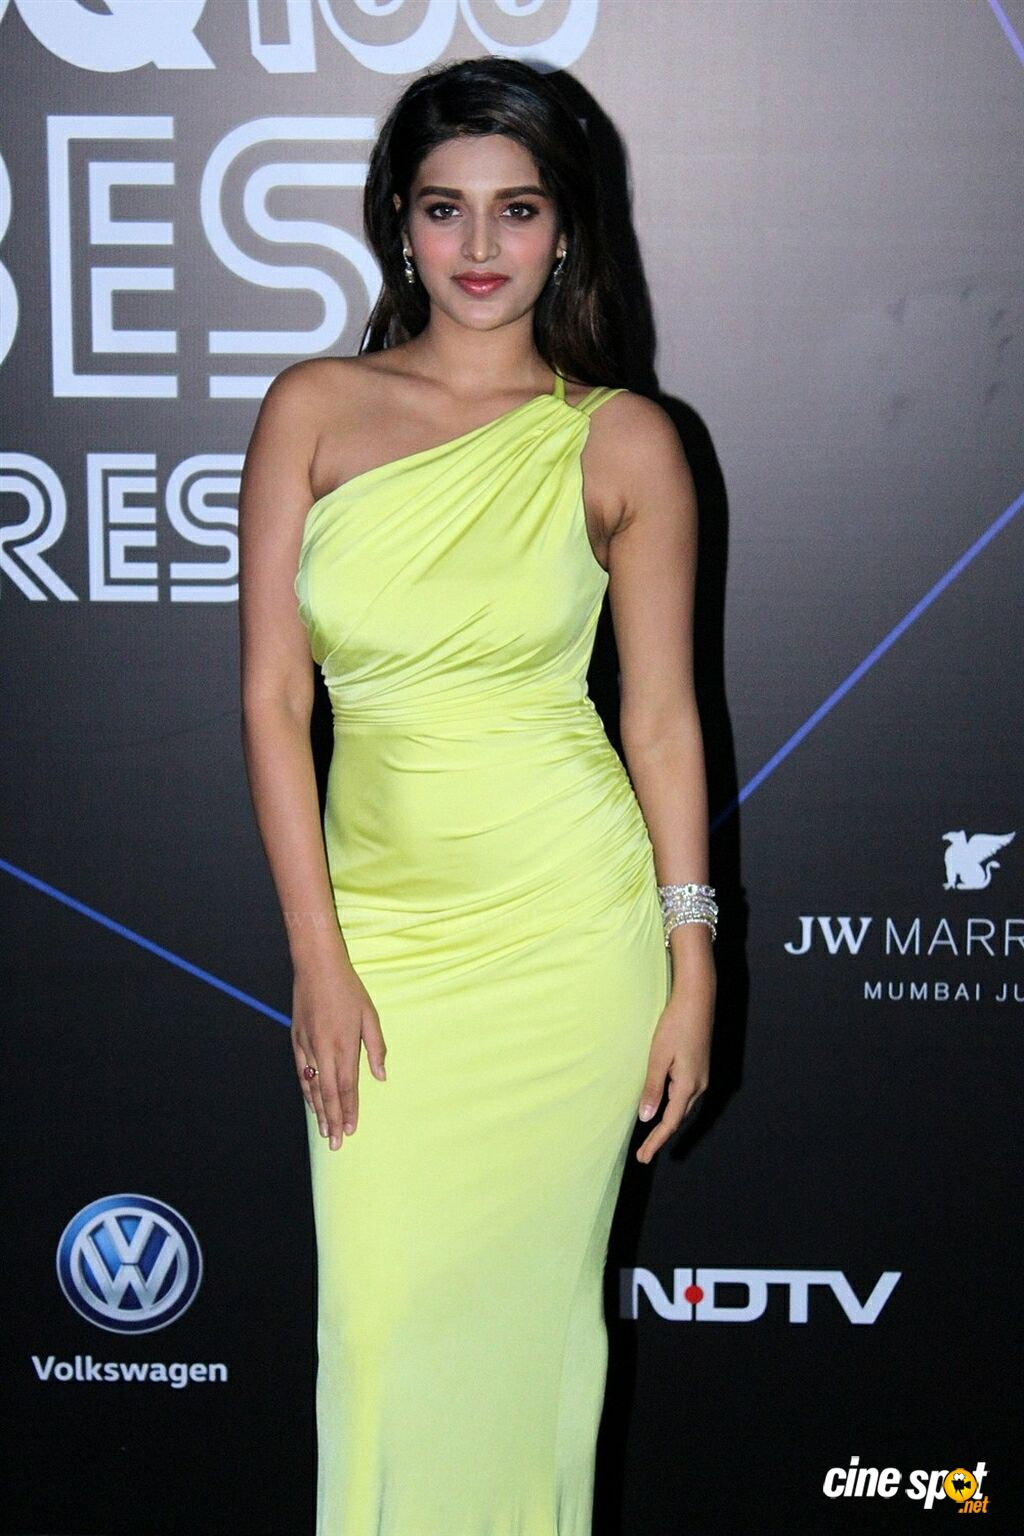 Nidhhi Agerwal at GQ Best Dressed Awards 2019 Red Carpet (5)